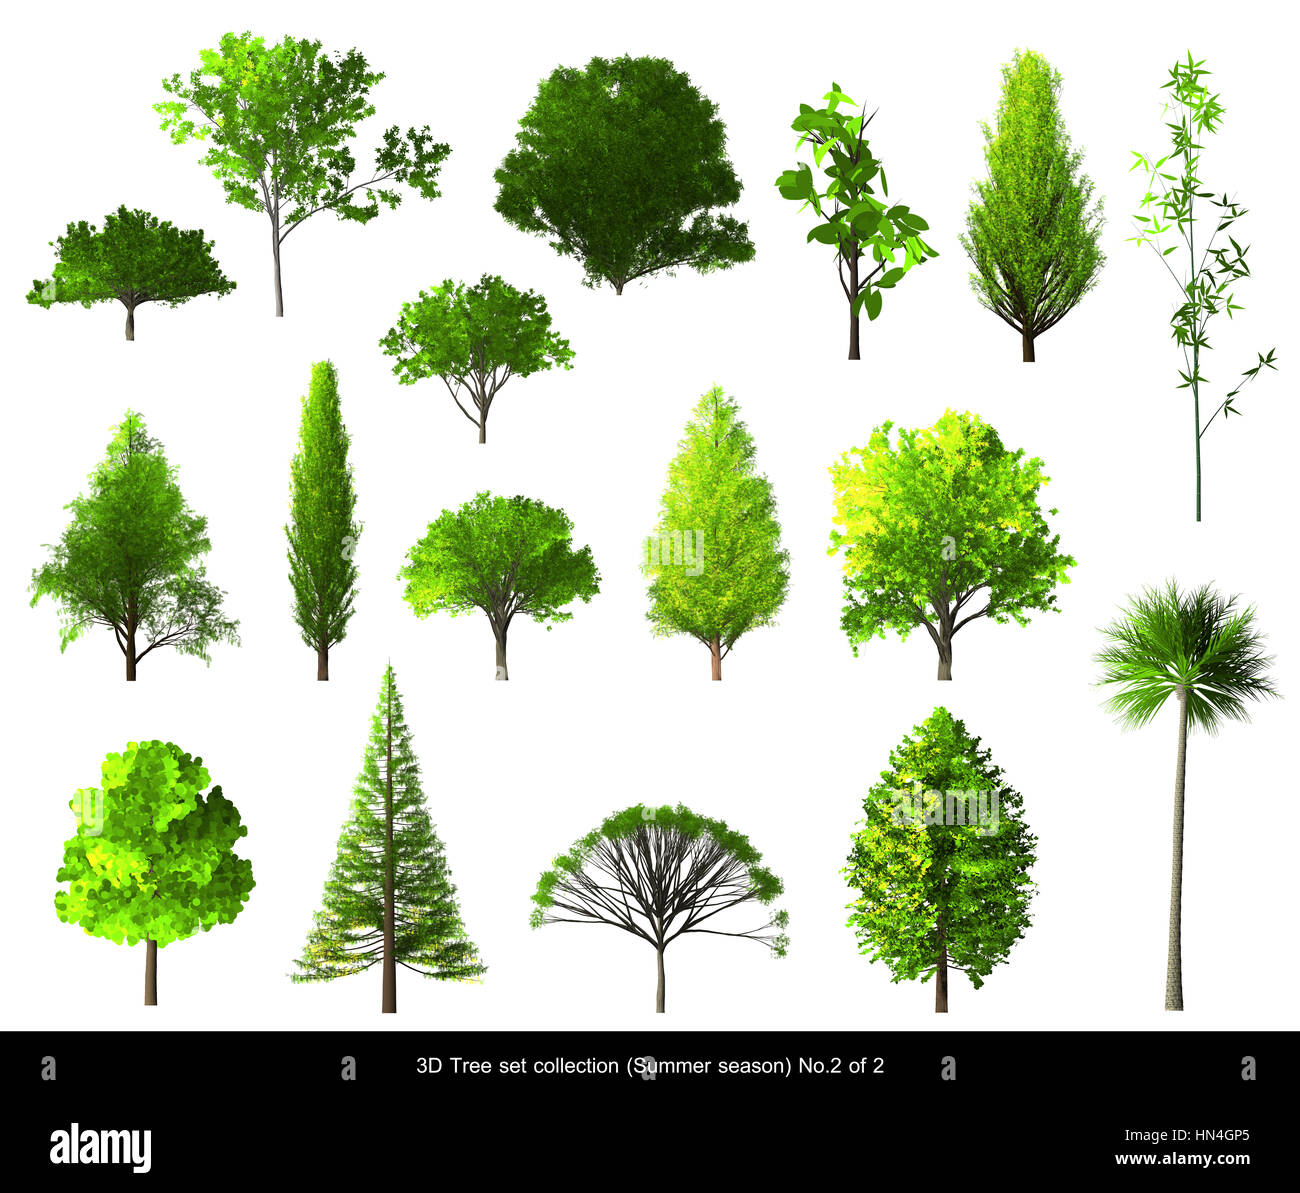 Green Leaf Tree Summer Season Set For Architecture Landscape Design, 3D  Tree Isolated On White